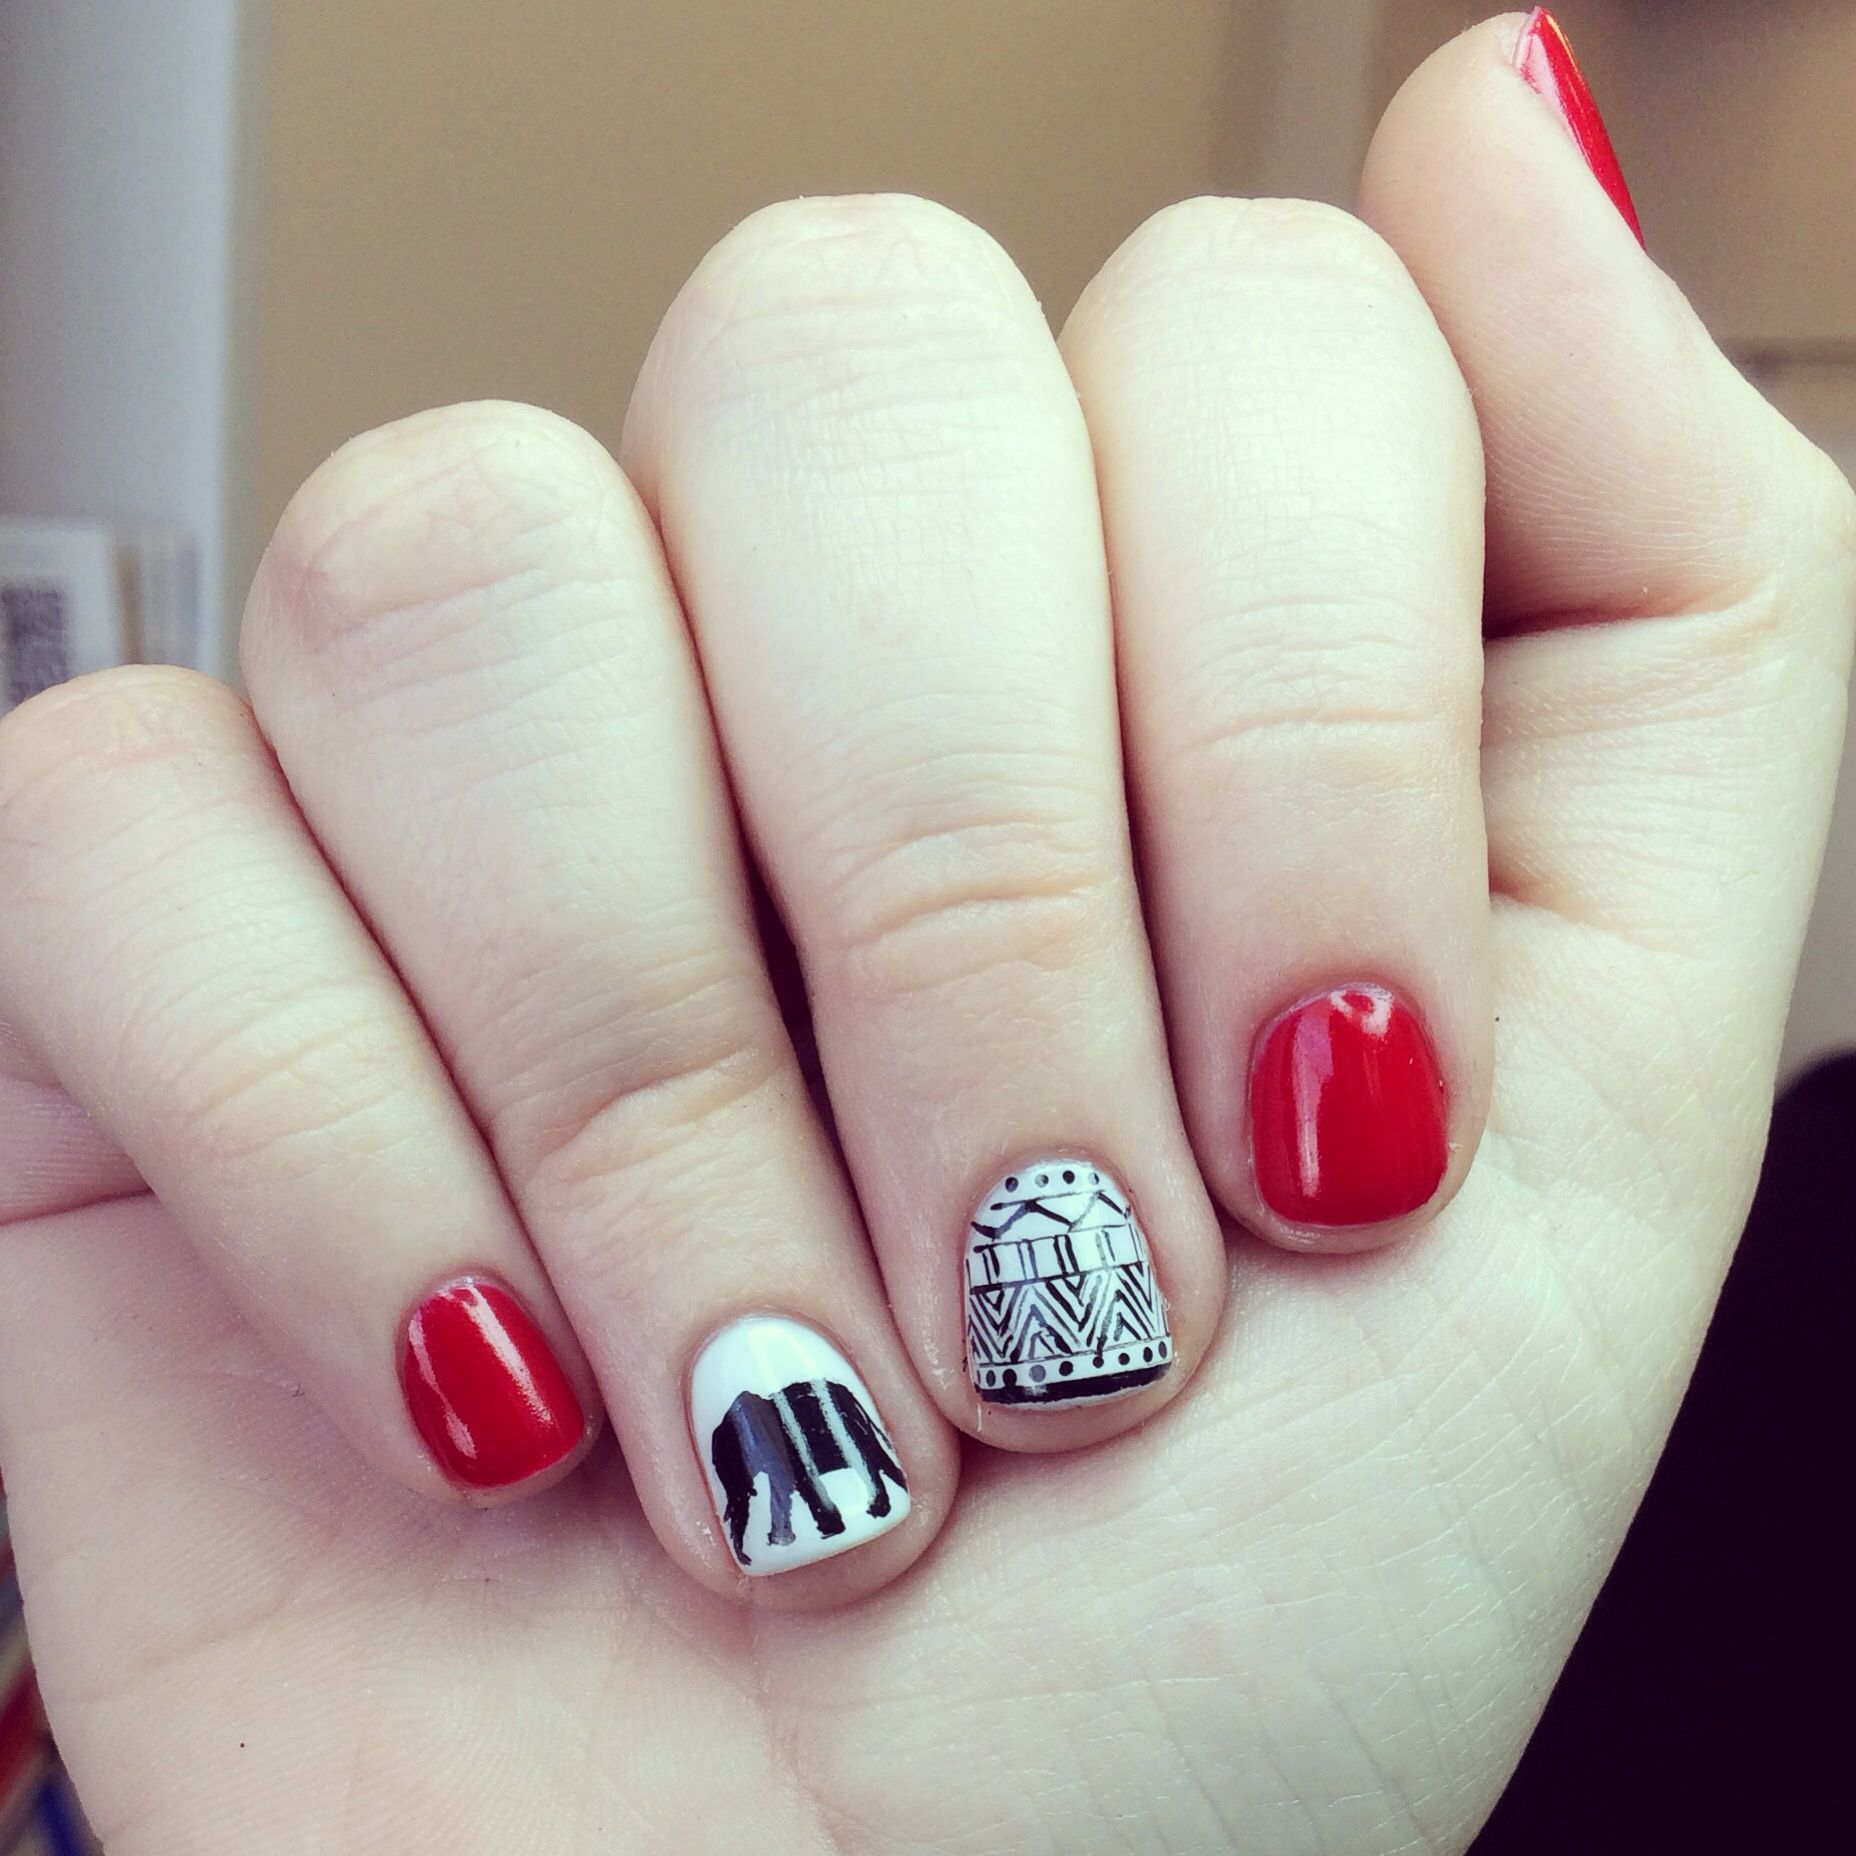 Tribal and elephant nail art silhouette gel manicure opi gel tribal and elephant nail art silhouette gel manicure opi gel polish fun prinsesfo Choice Image